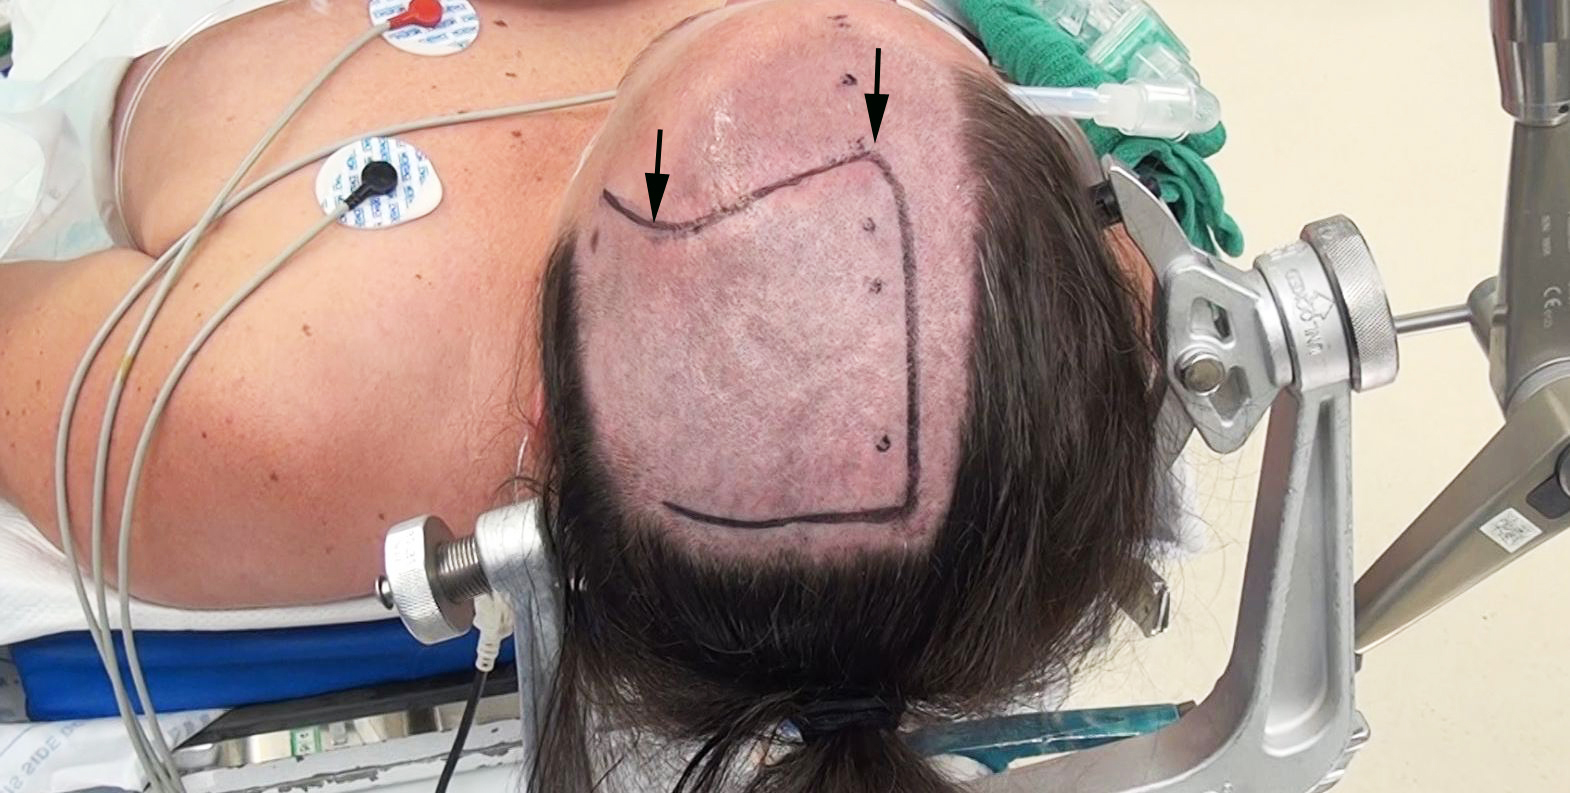 Figure 8: In this patient, the tumor recurred along the posterior aspect of the initial resection cavity. The limits of the incision for the first operation are marked with arrows. For the second operation, the linear incision was extended posteriorly using a U-shaped flap with a broad base.